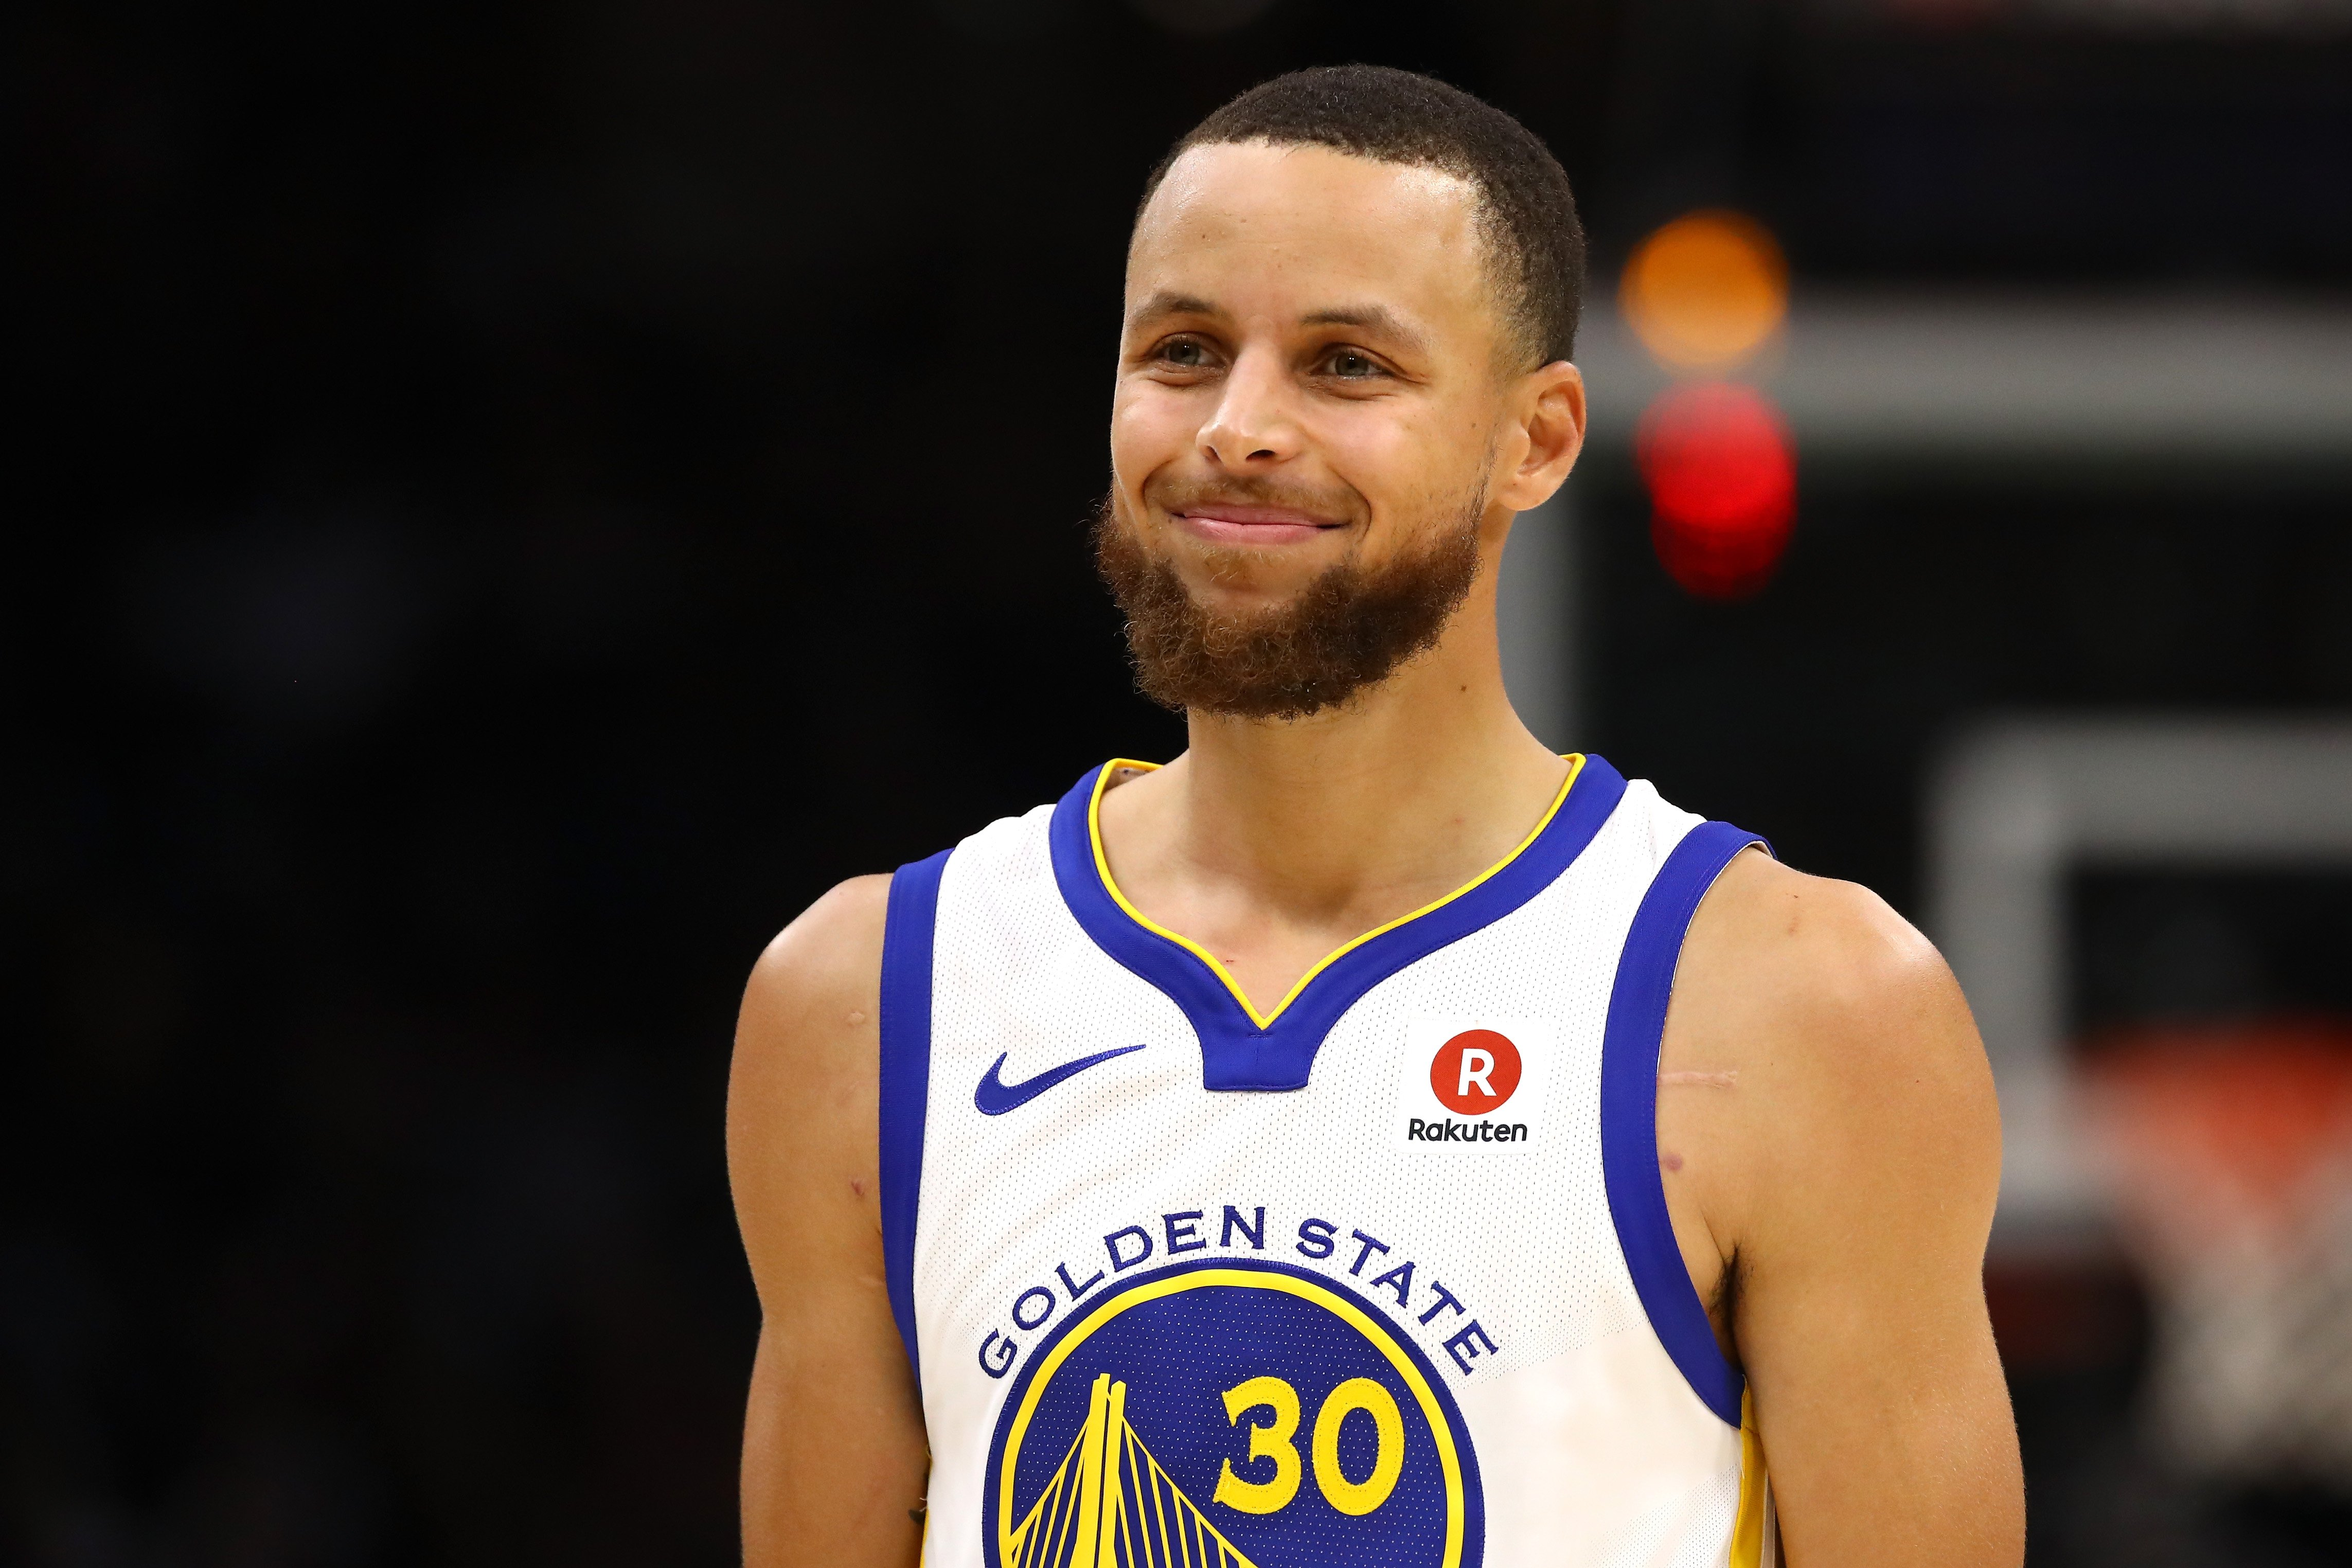 Stephen Curry during a game against the Cleveland Cavaliers at the 2018 NBA Finals in Cleveland, Ohio on June 8, 2018. | Photo: Getty Images